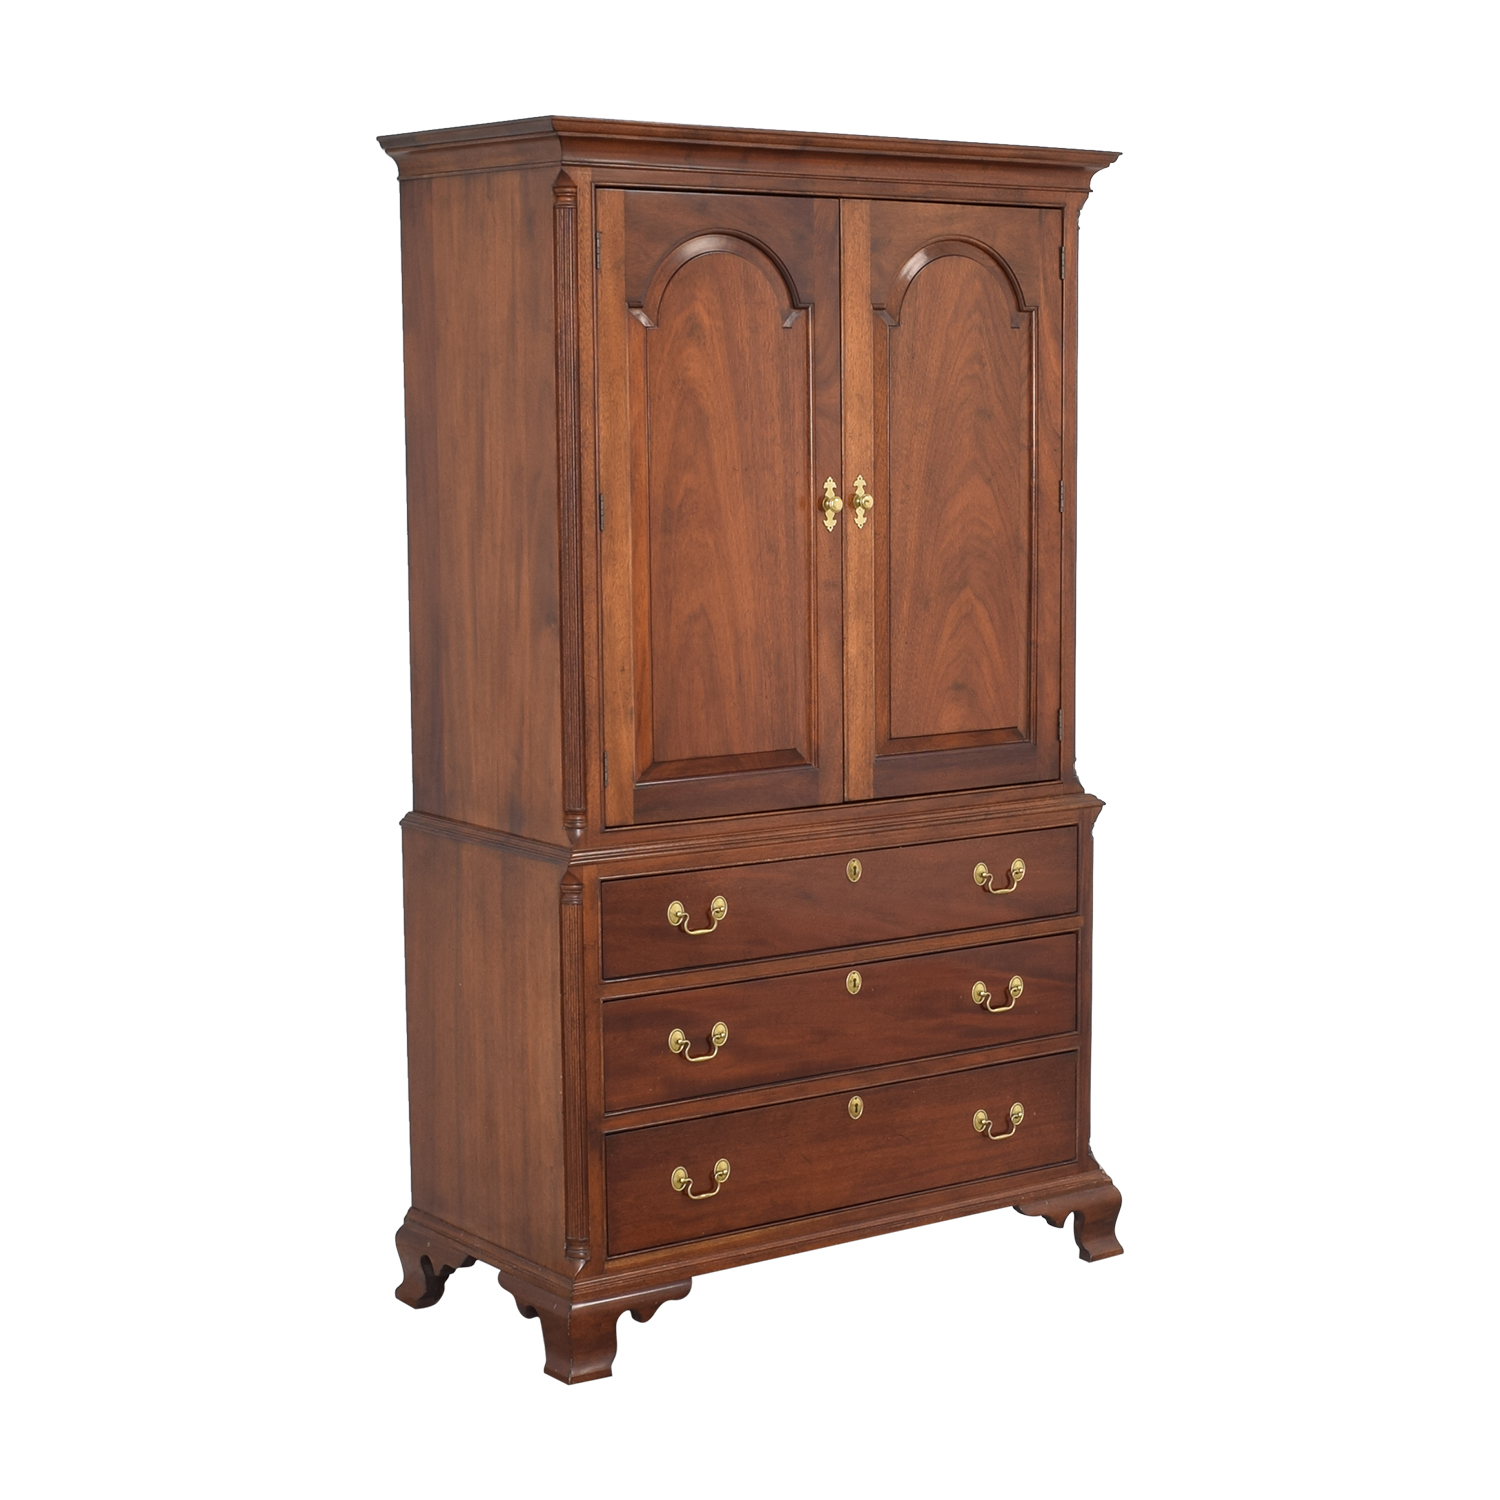 Stickley Furniture Stickley Furniture Entertainment Center Armoire pa